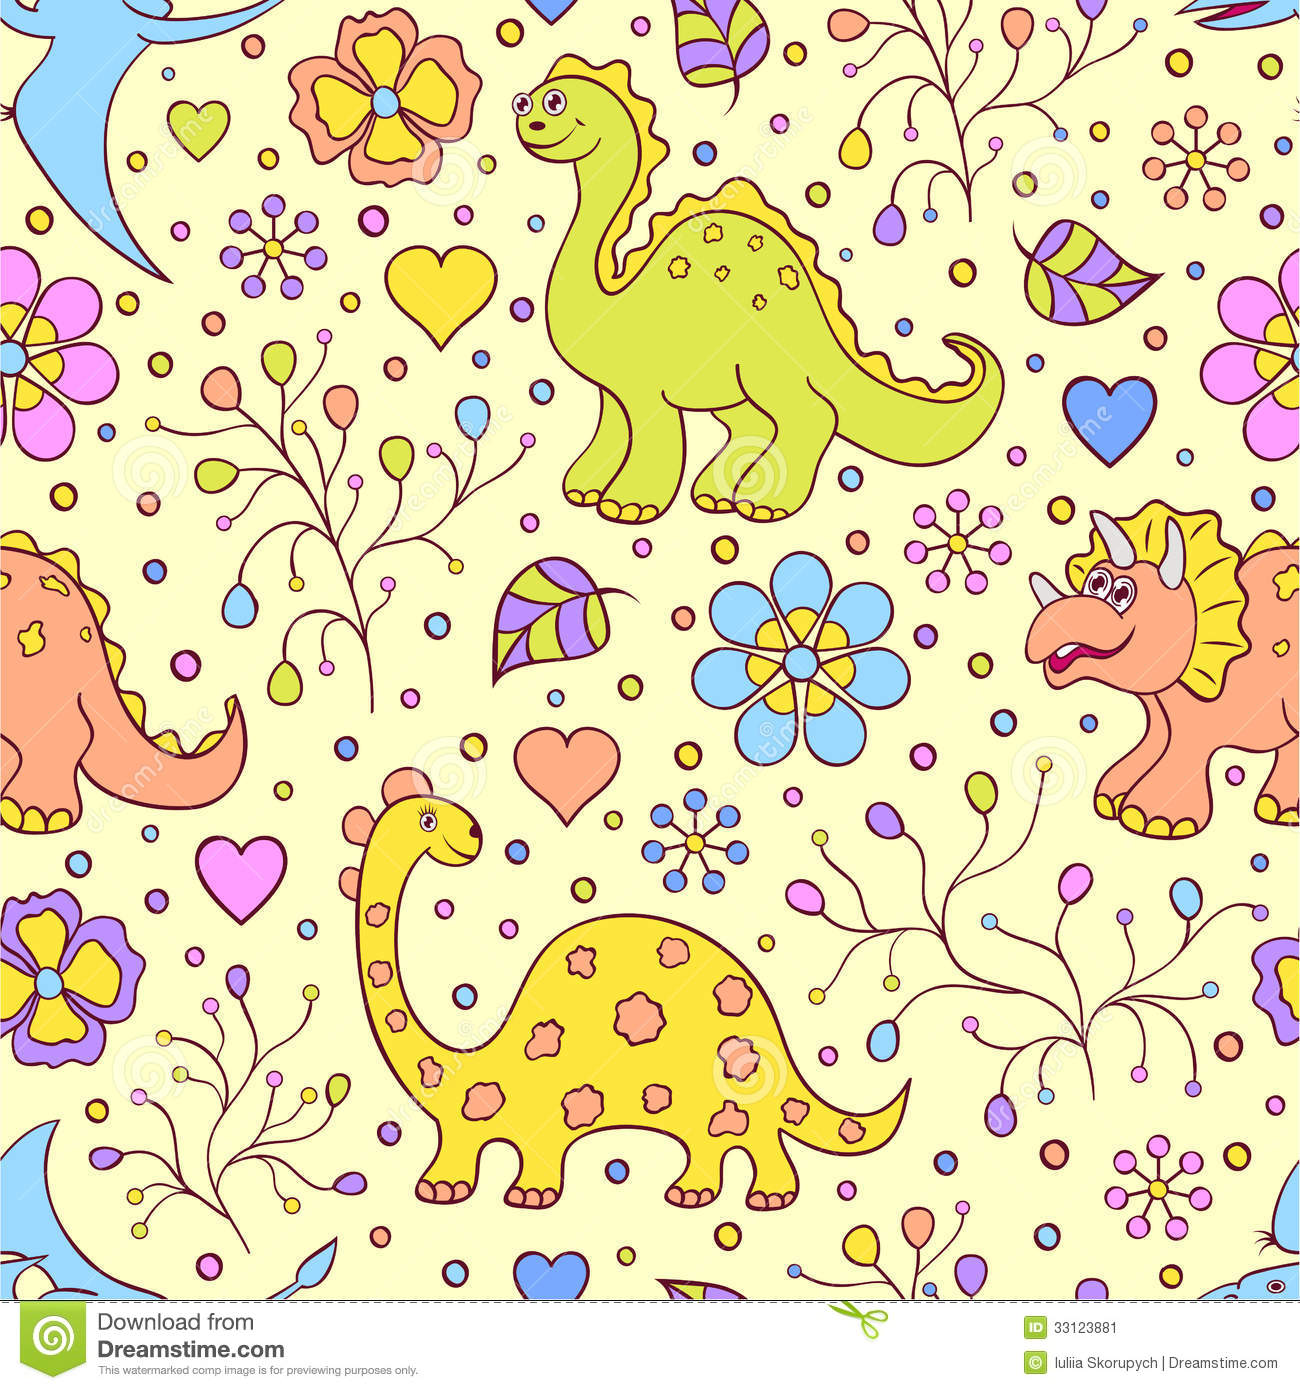 Cute Dinosaur Wallpaper Backgrounds   Viewing Gallery 1300x1390